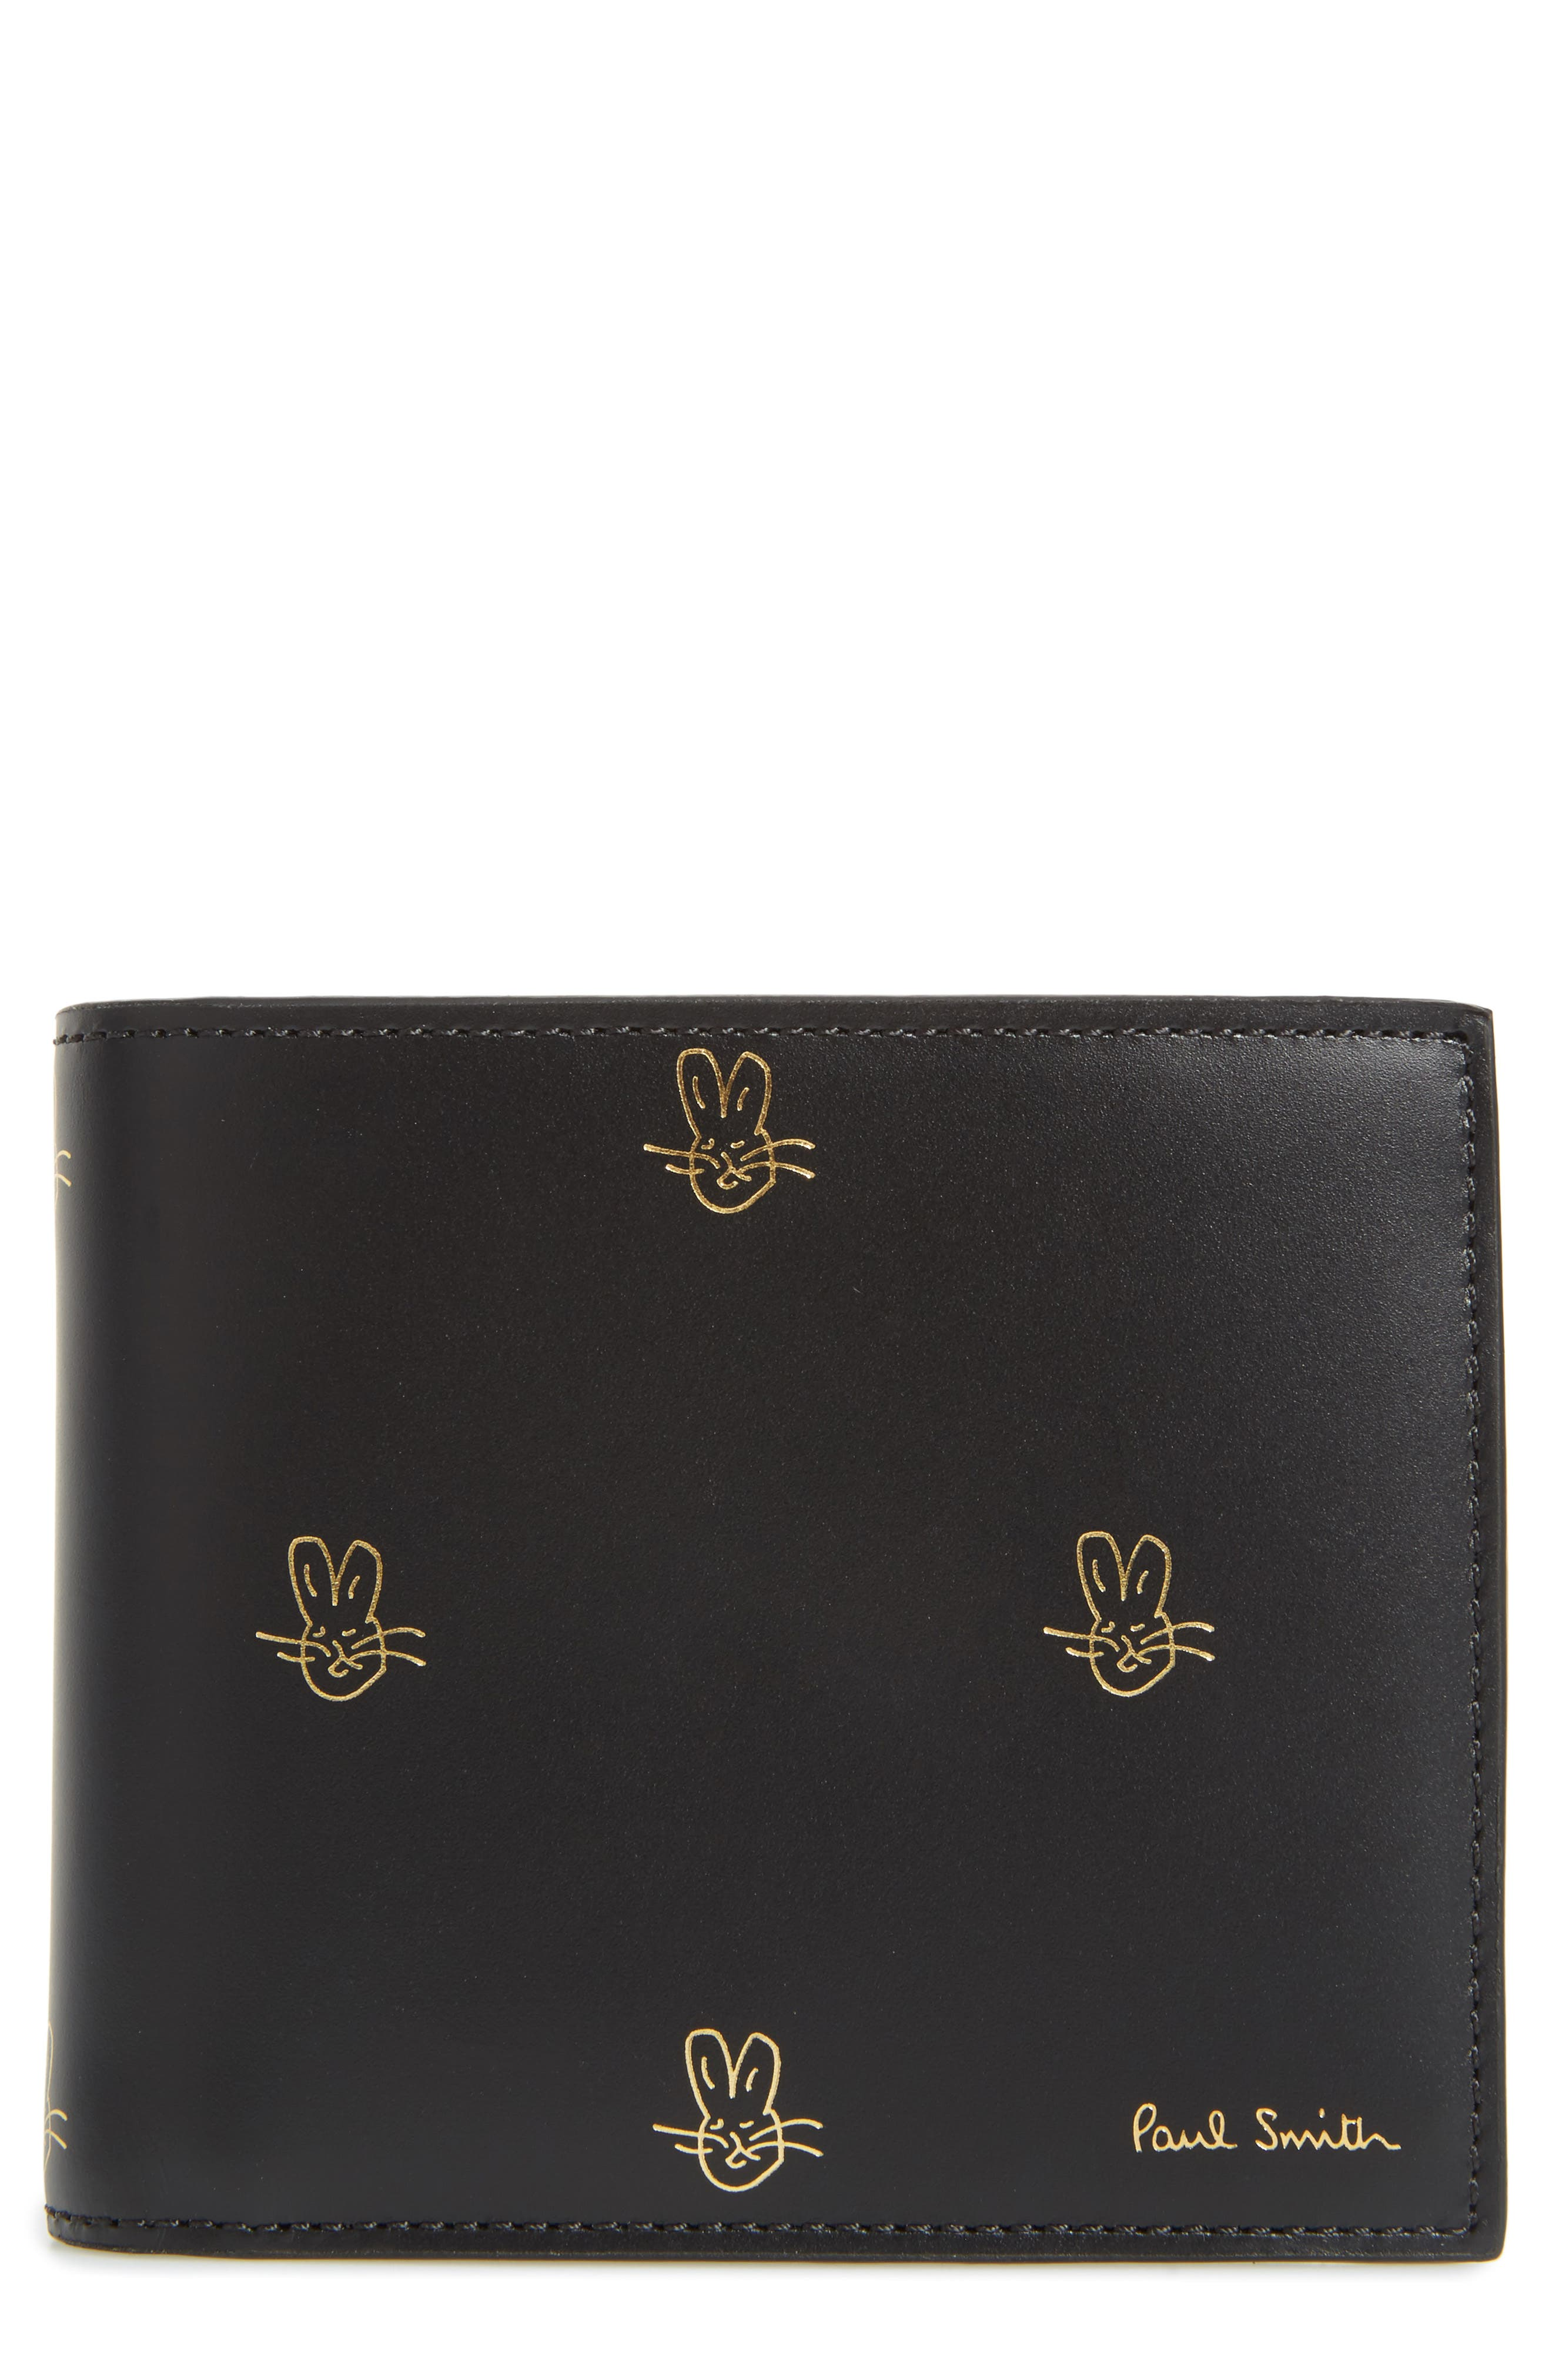 Main Image - Paul Smith Doodles Leather Billfold Wallet